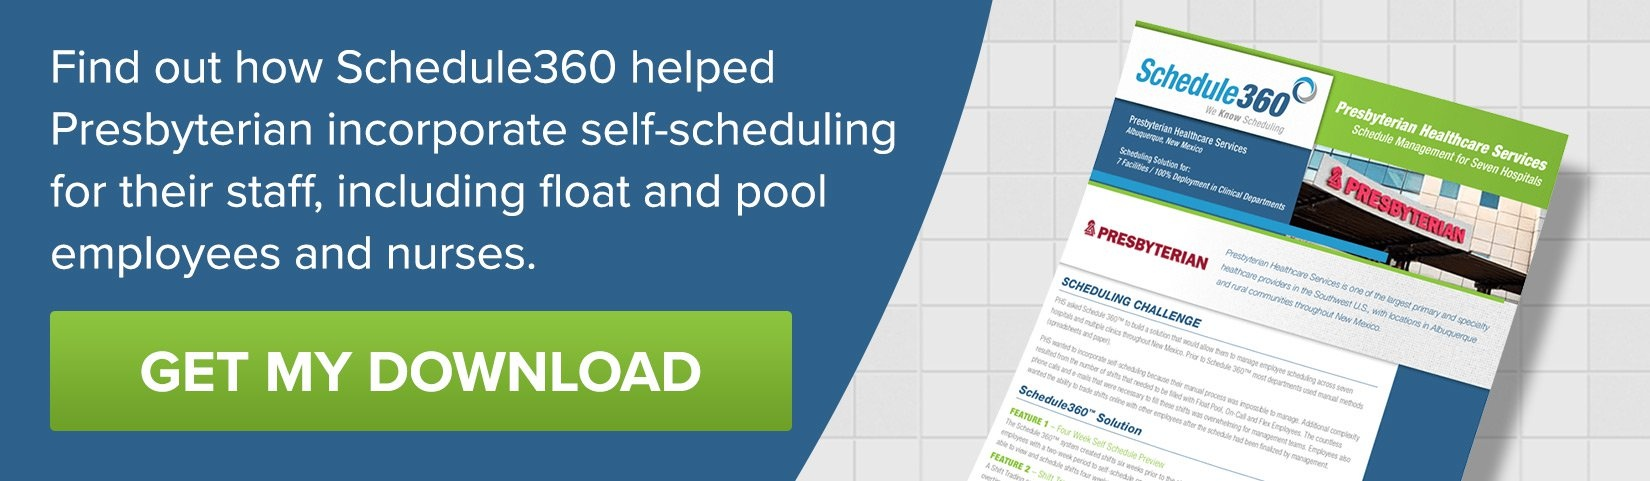 Find out how Schedule360 helped Presbyterian incorporate self-scheduling for their staff, including float and pool employees and nurses